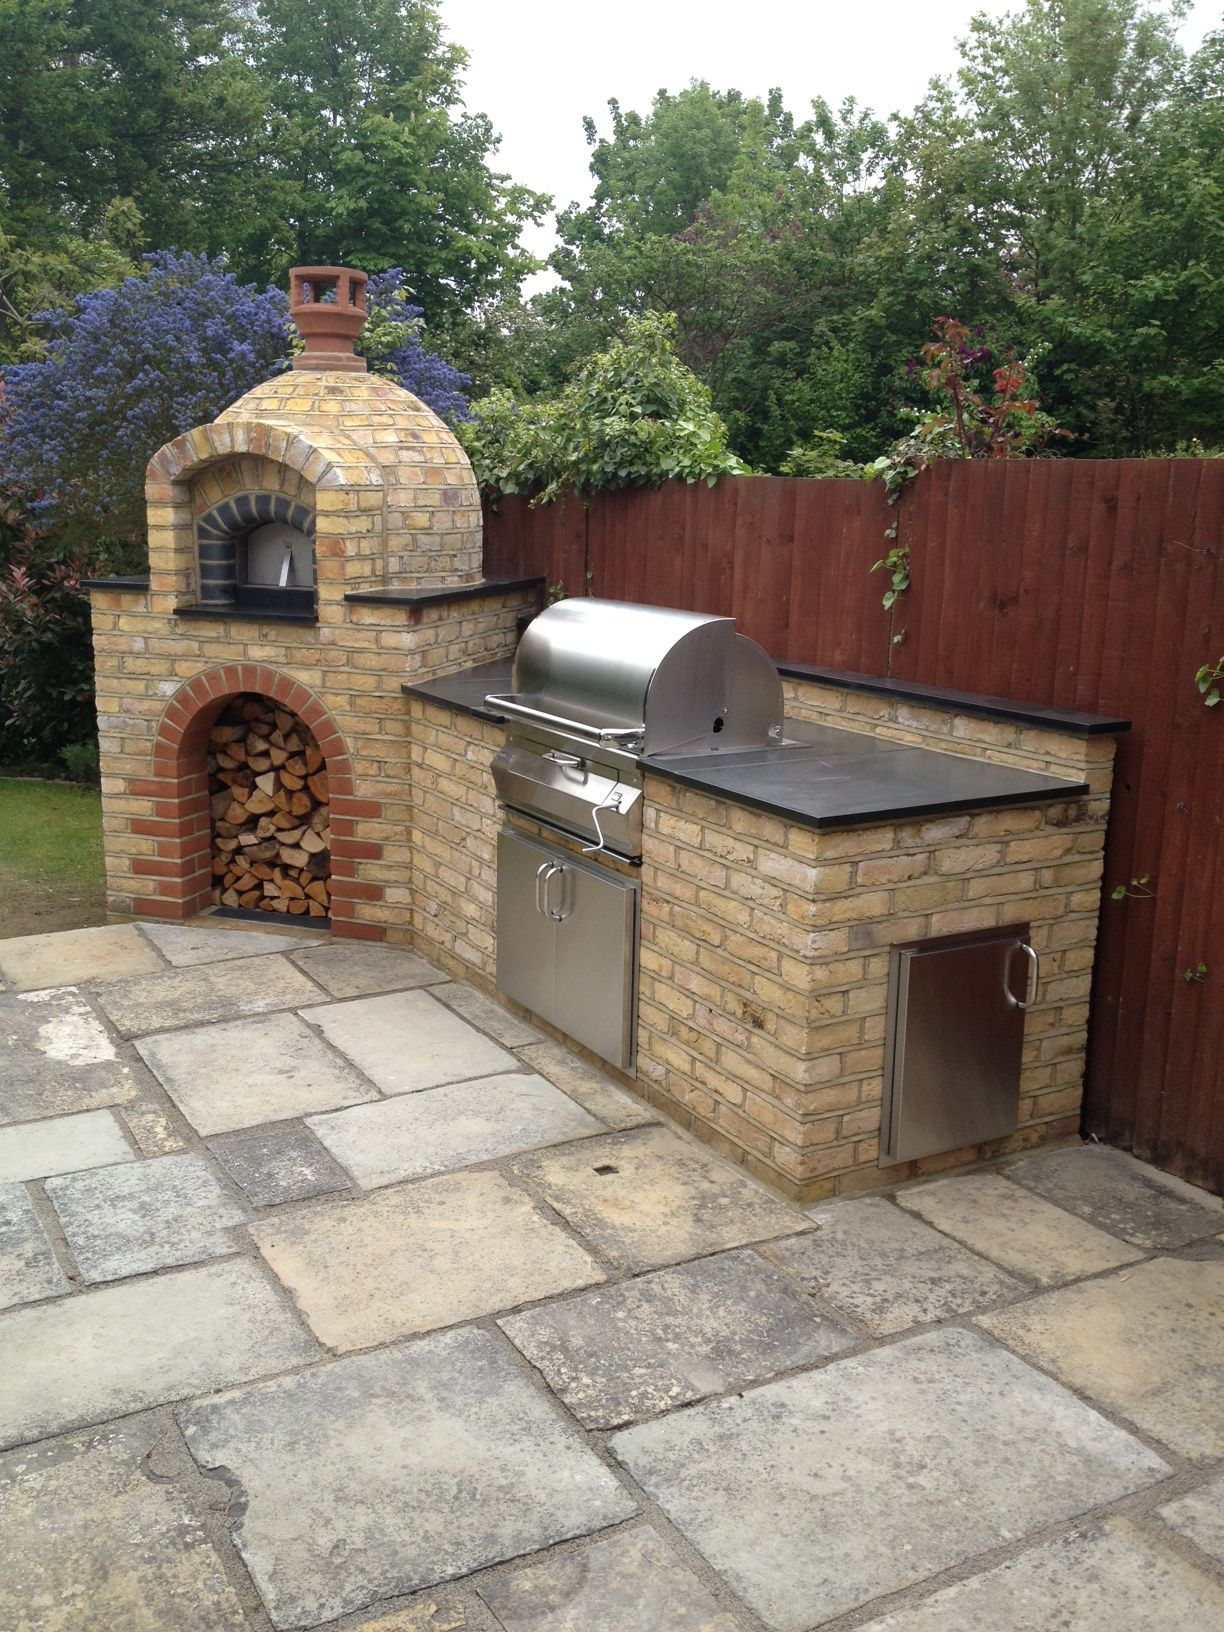 Primo 60 Wood Fired Pizza Oven By The Stone Bake Oven Company